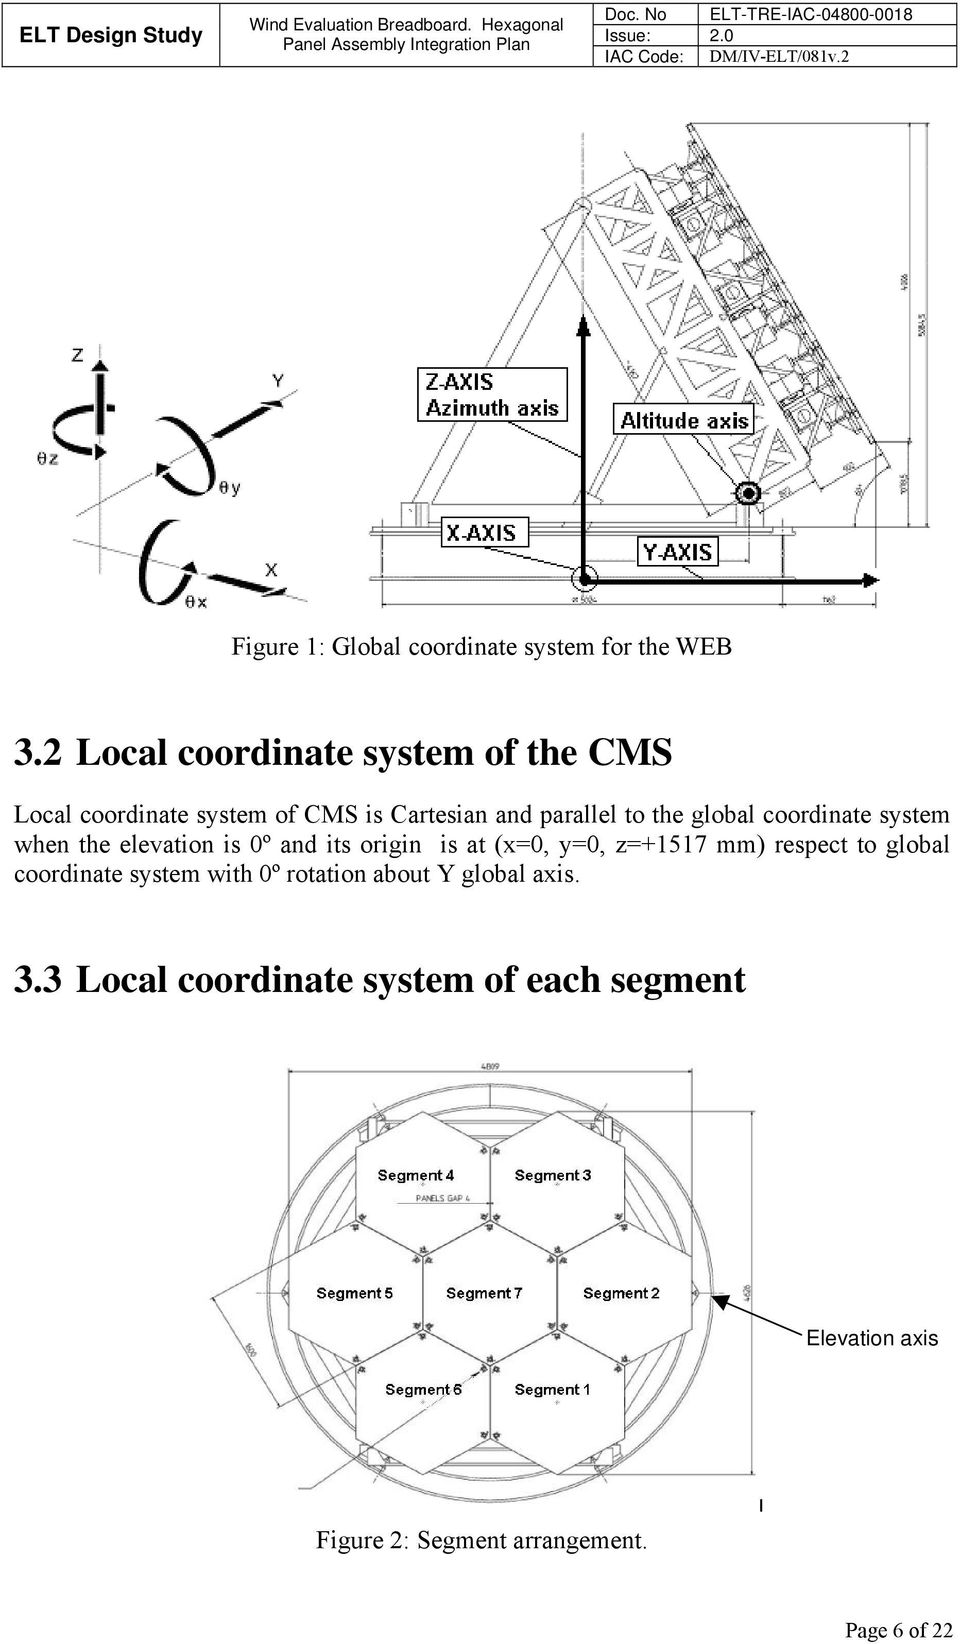 global coordinate system when the elevation is 0º and its origin is at (=0, y=0, z=+1517 mm) respect to